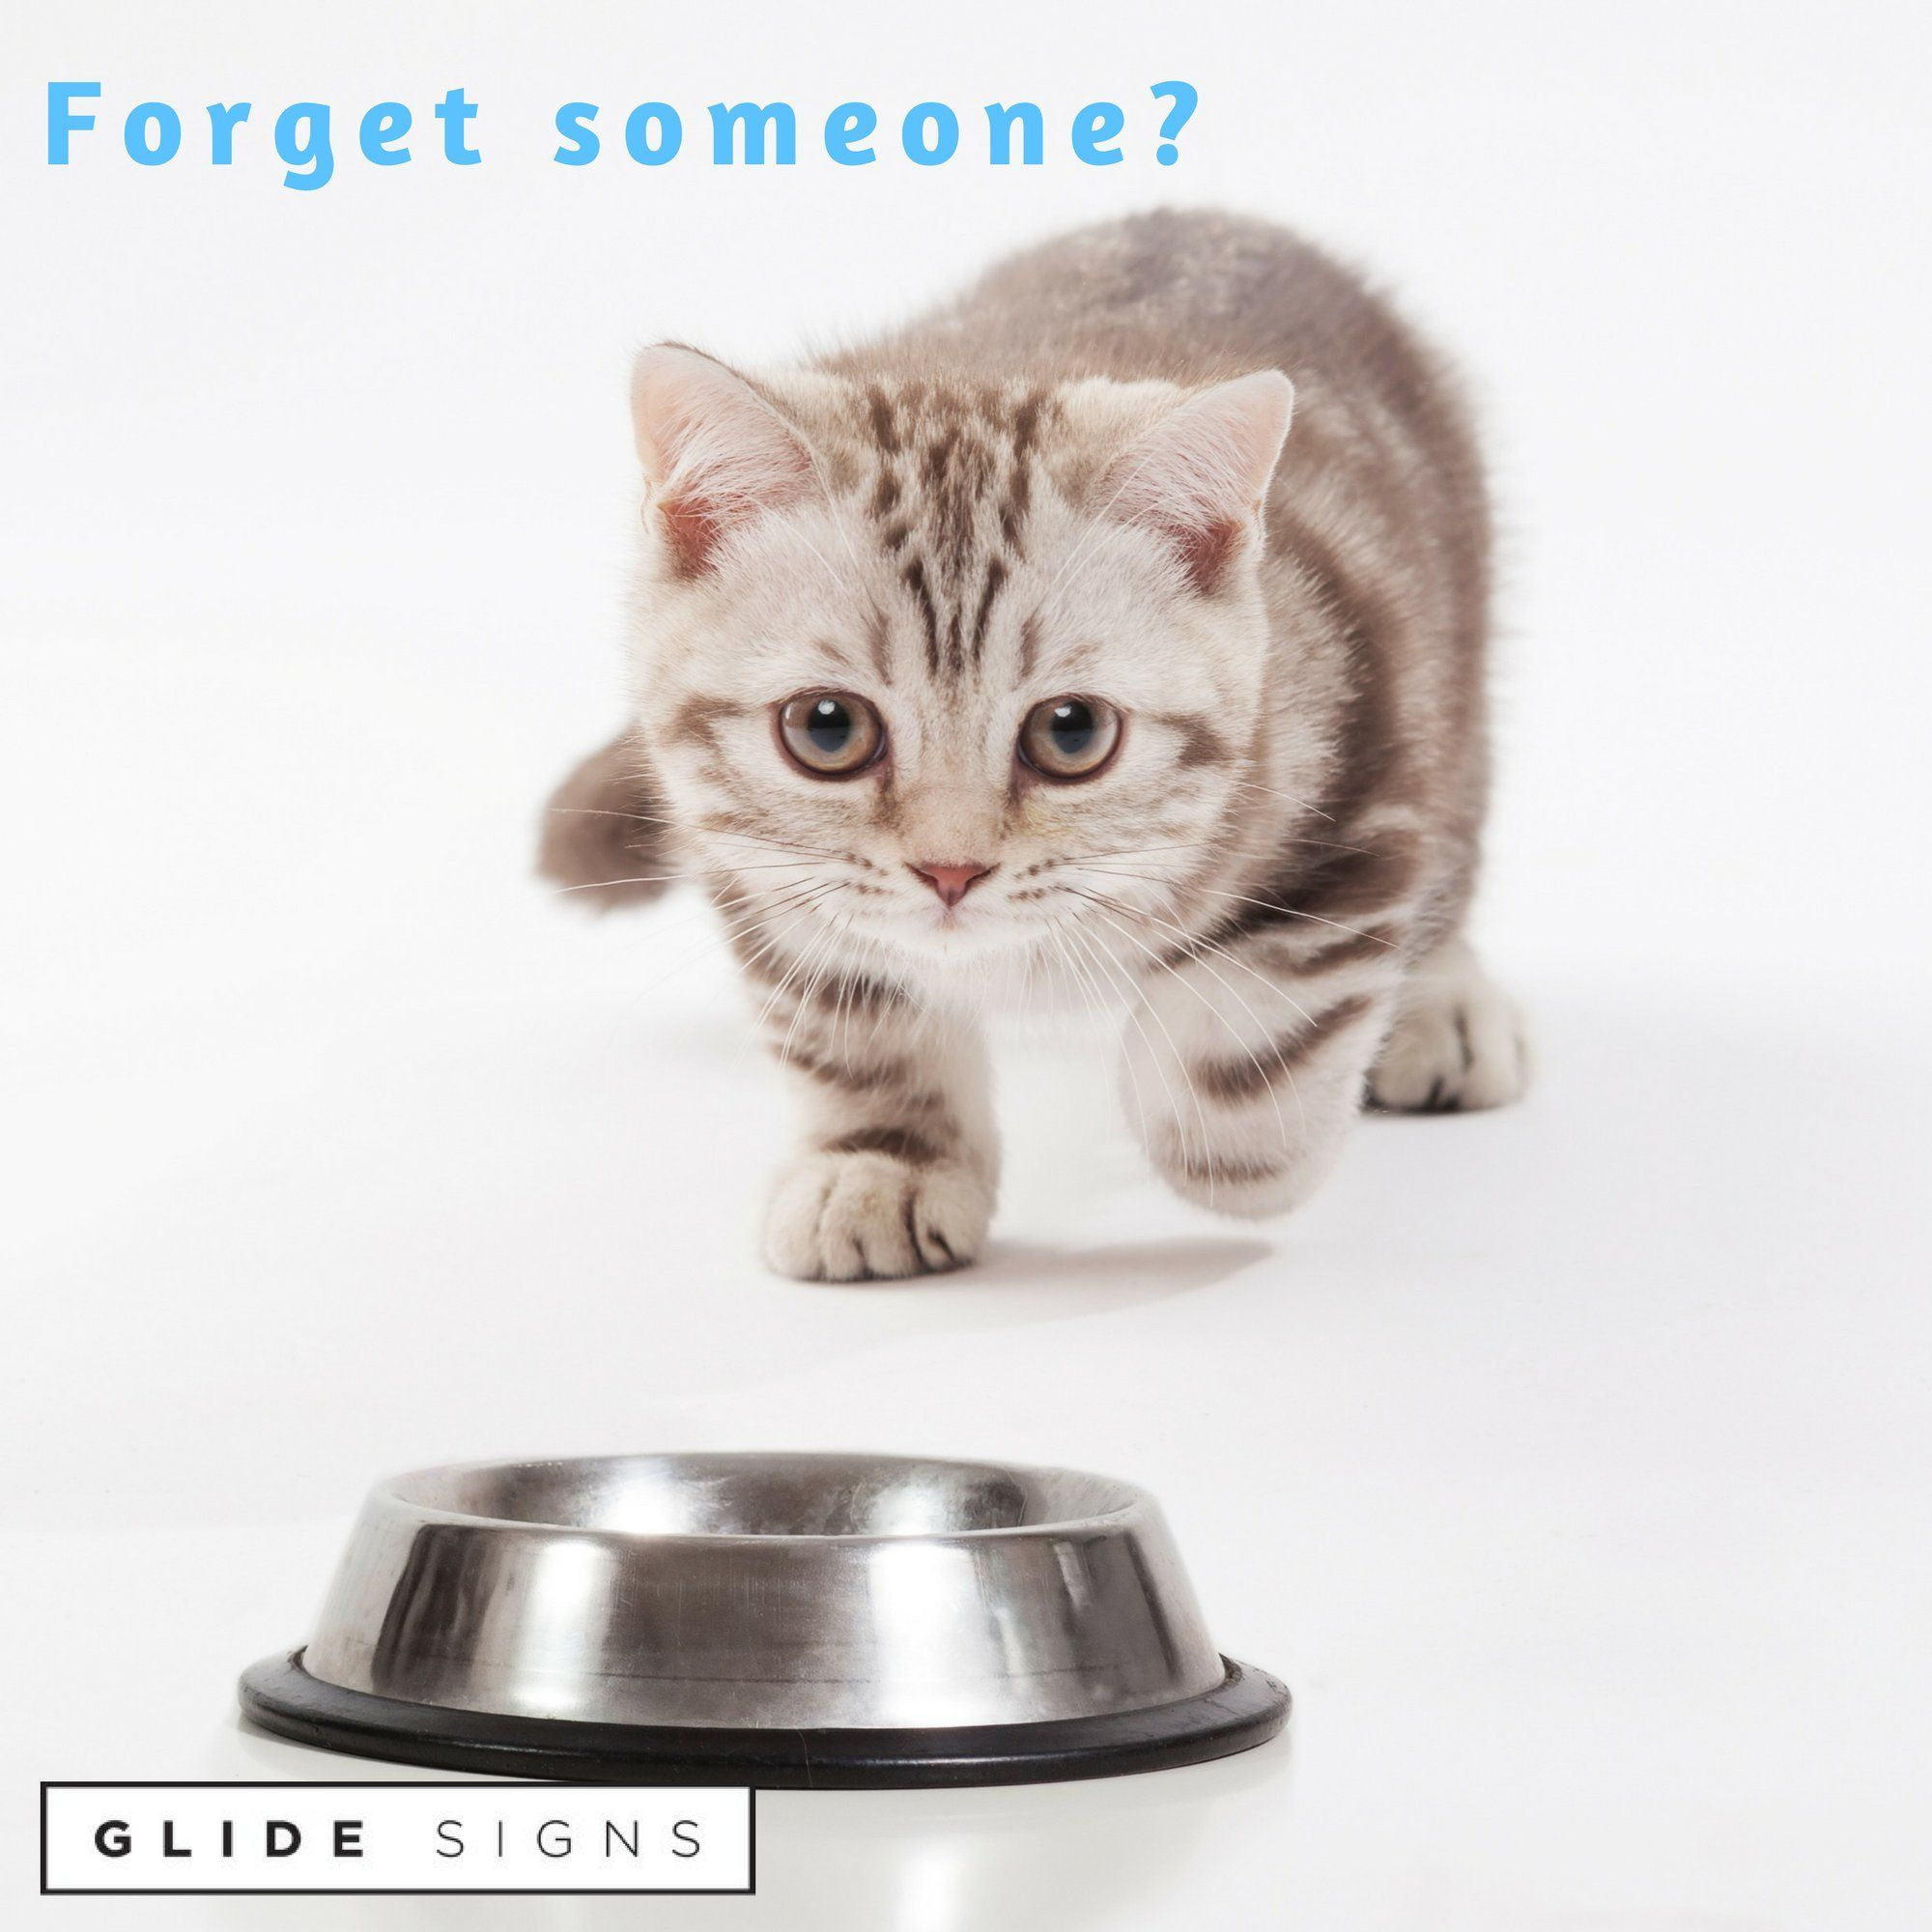 Glide Signs Cat Feeding Or Medication Reminder A Pet Food Organizer Am Pm Daily Indicator Sign Fed Or Feed The Kit Cat Feeding Kitten Supplies Food Animals